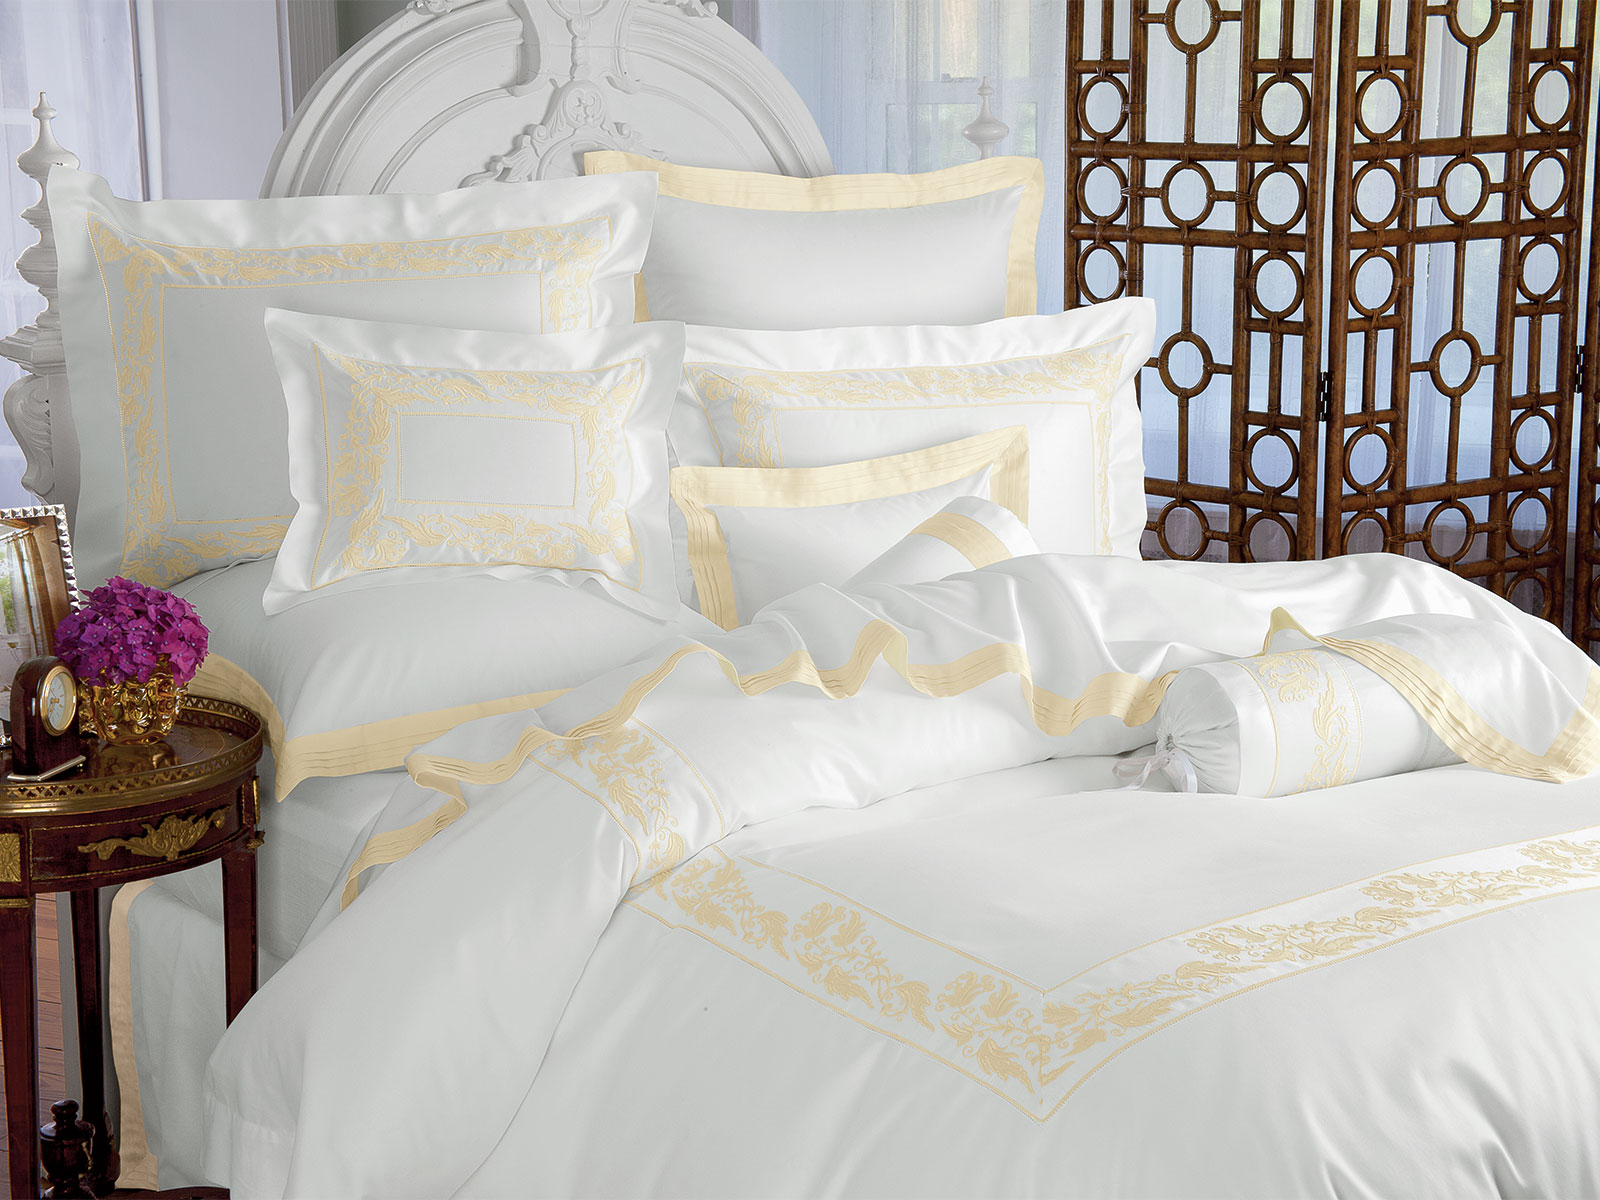 Belle Epoque Luxury Bedding Italian Bed Linens